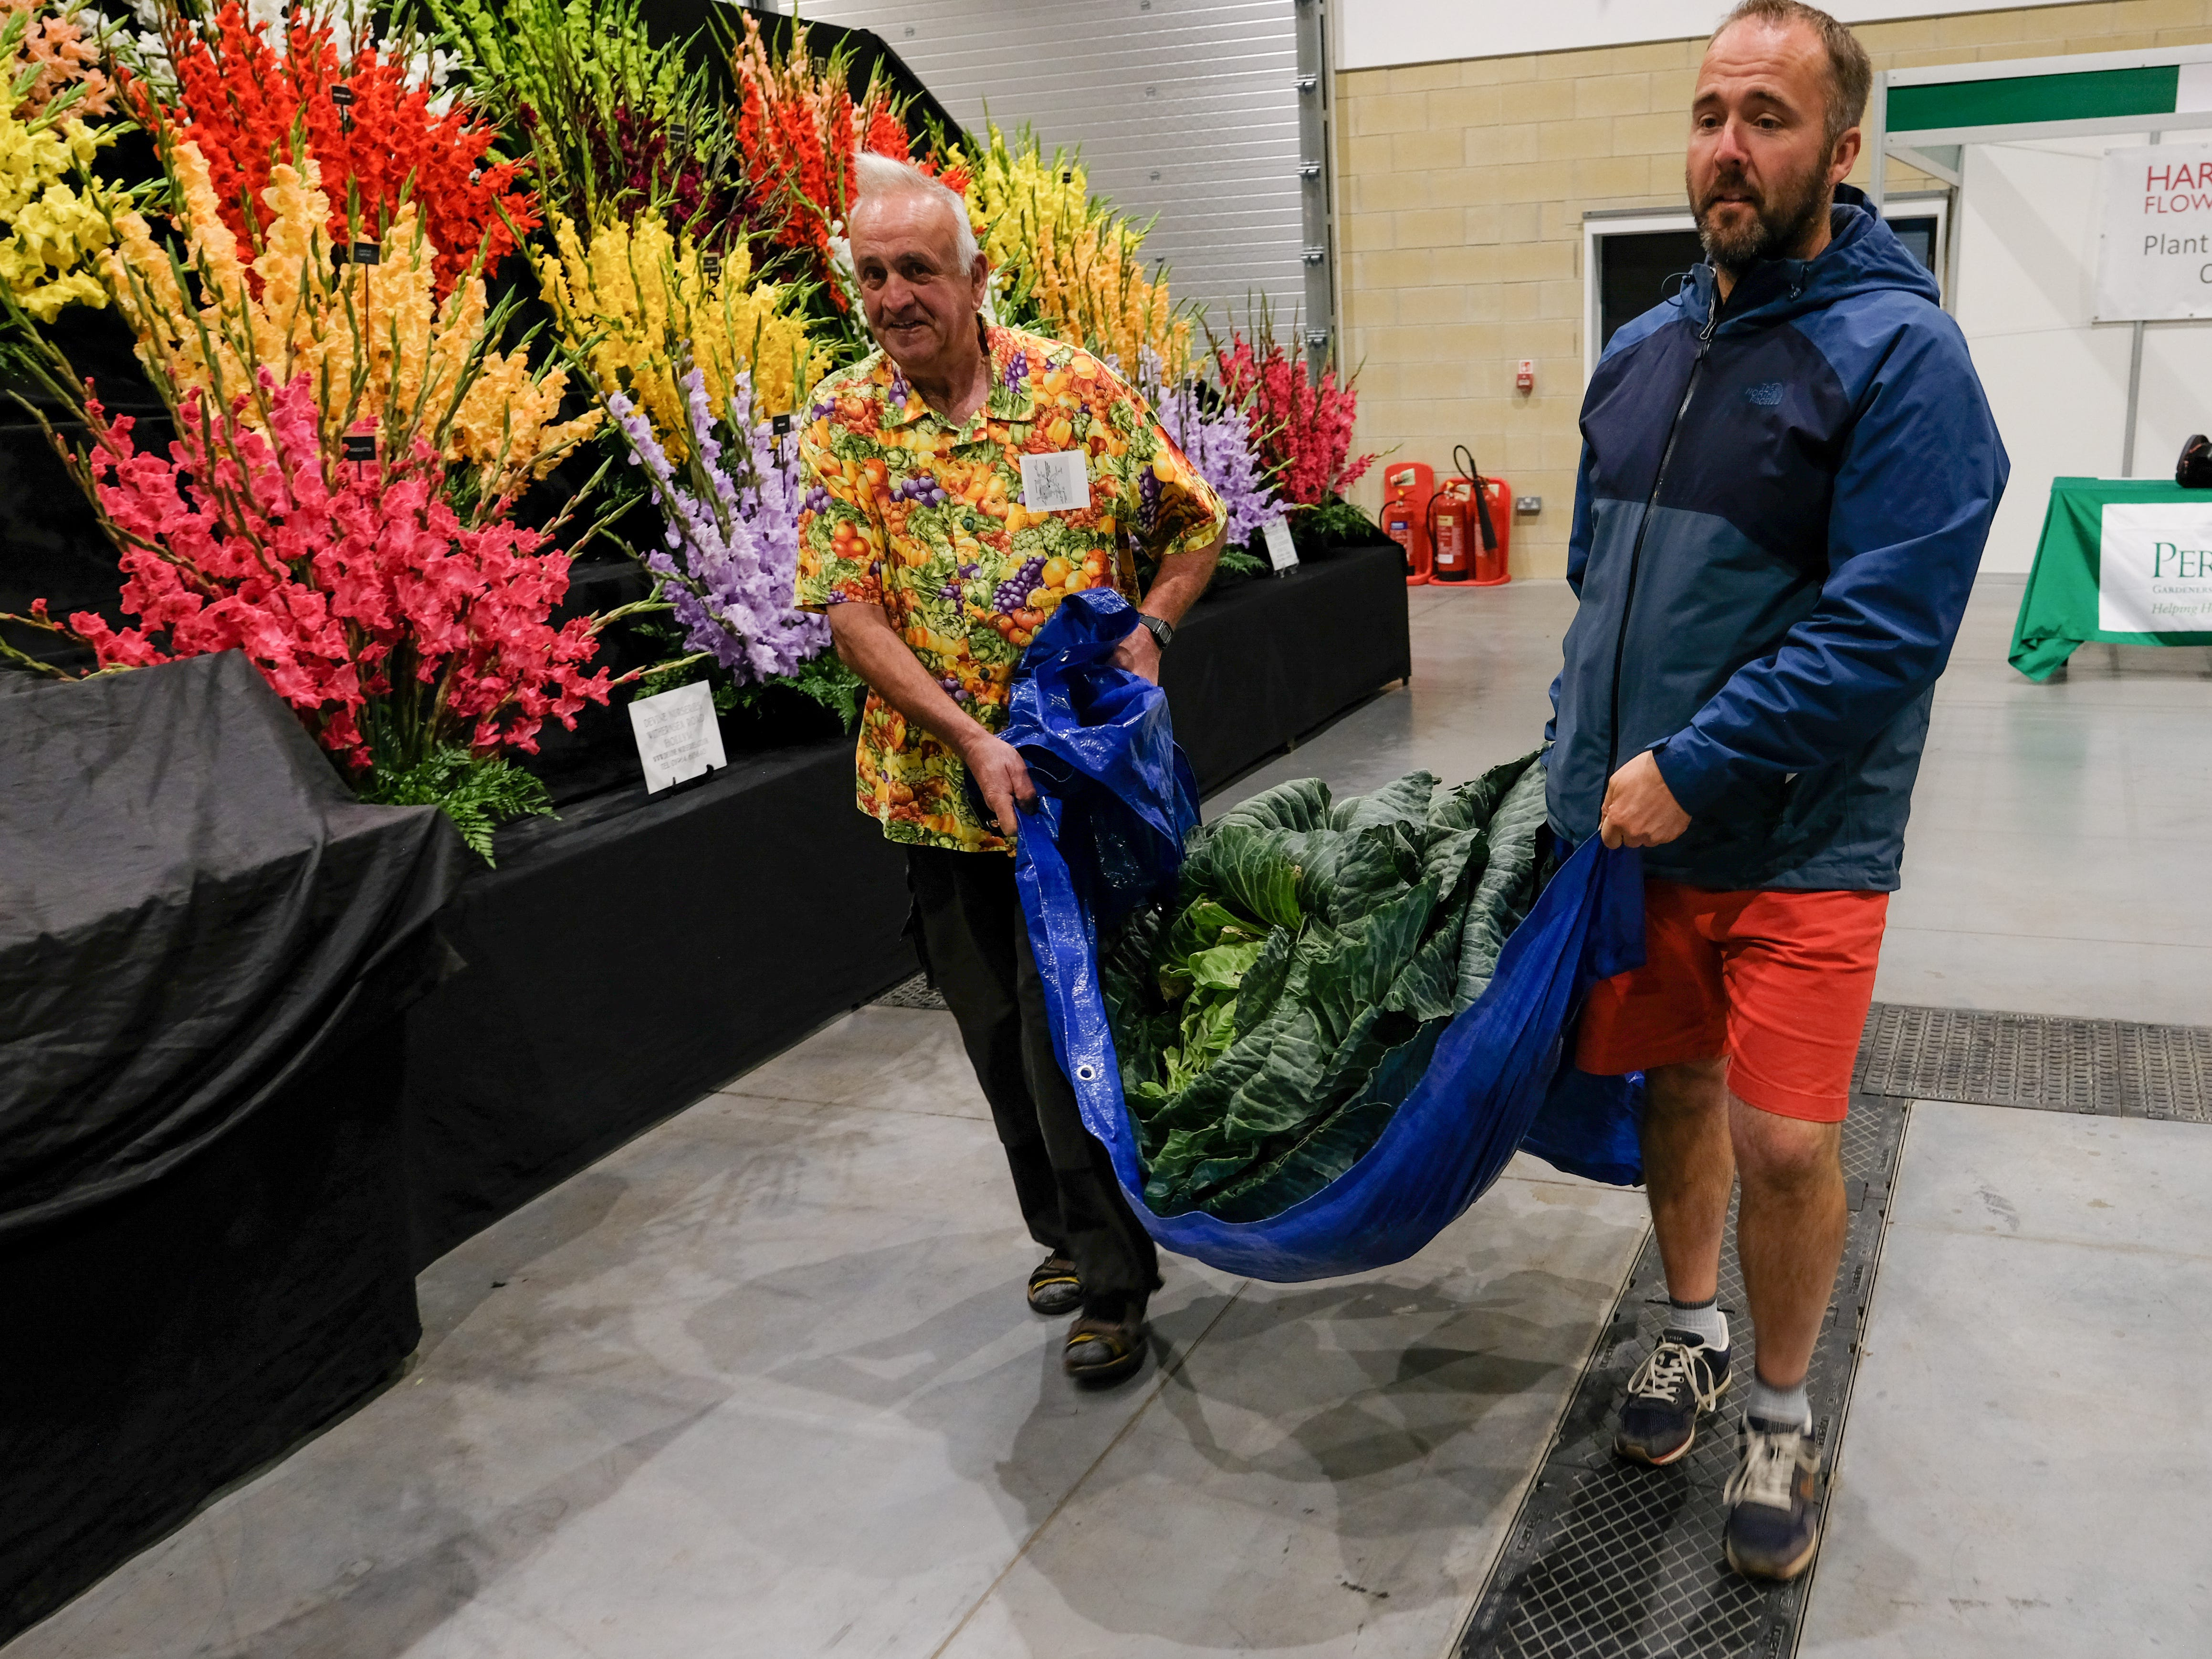 Kevin Fortey and Ian Neale with a Giant cabbage.